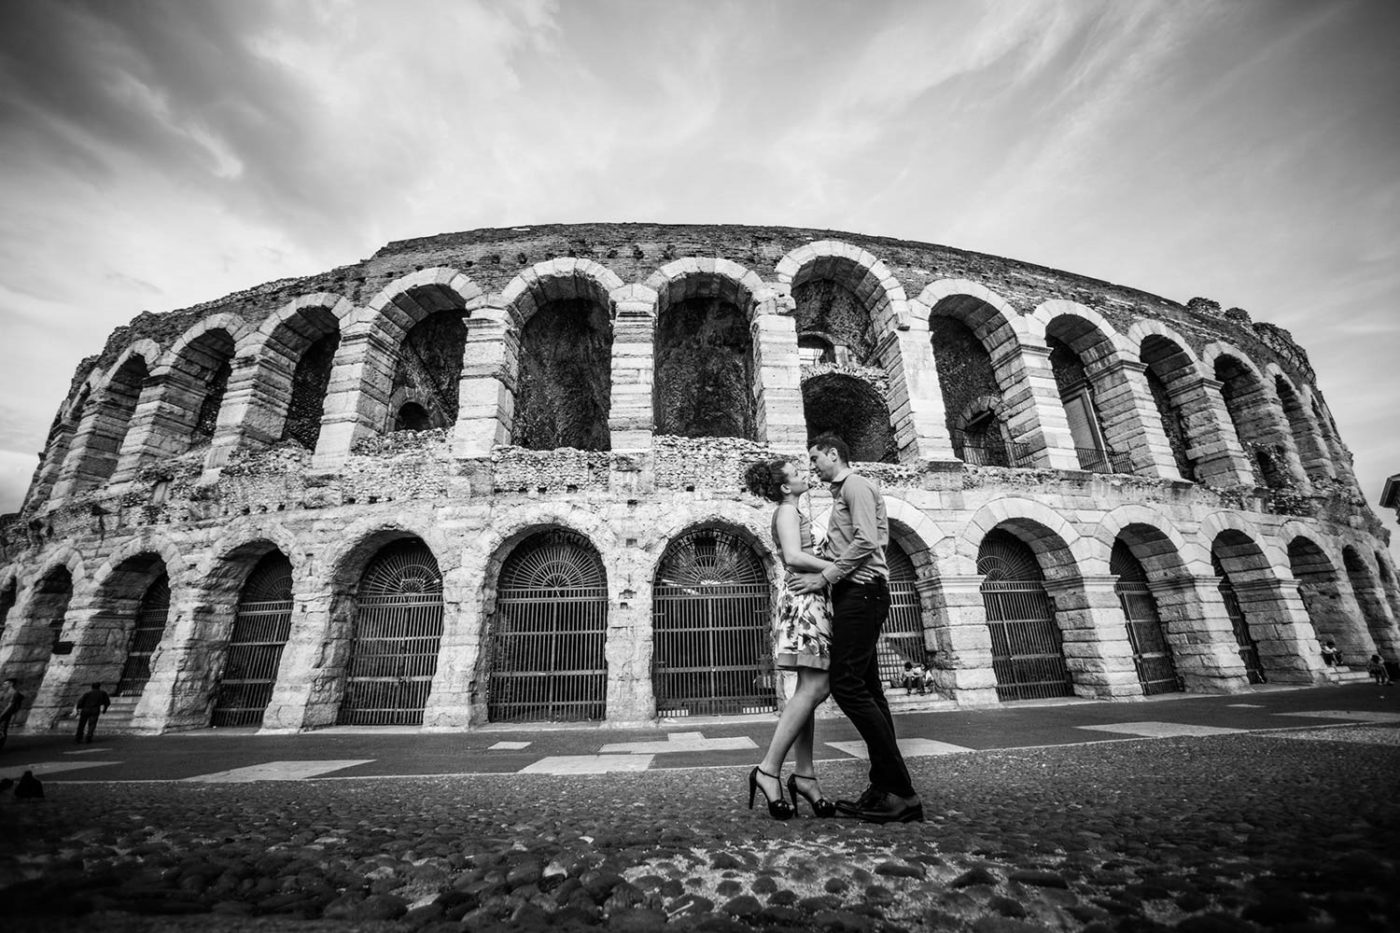 Hire Pix Around to capture your honeymoon